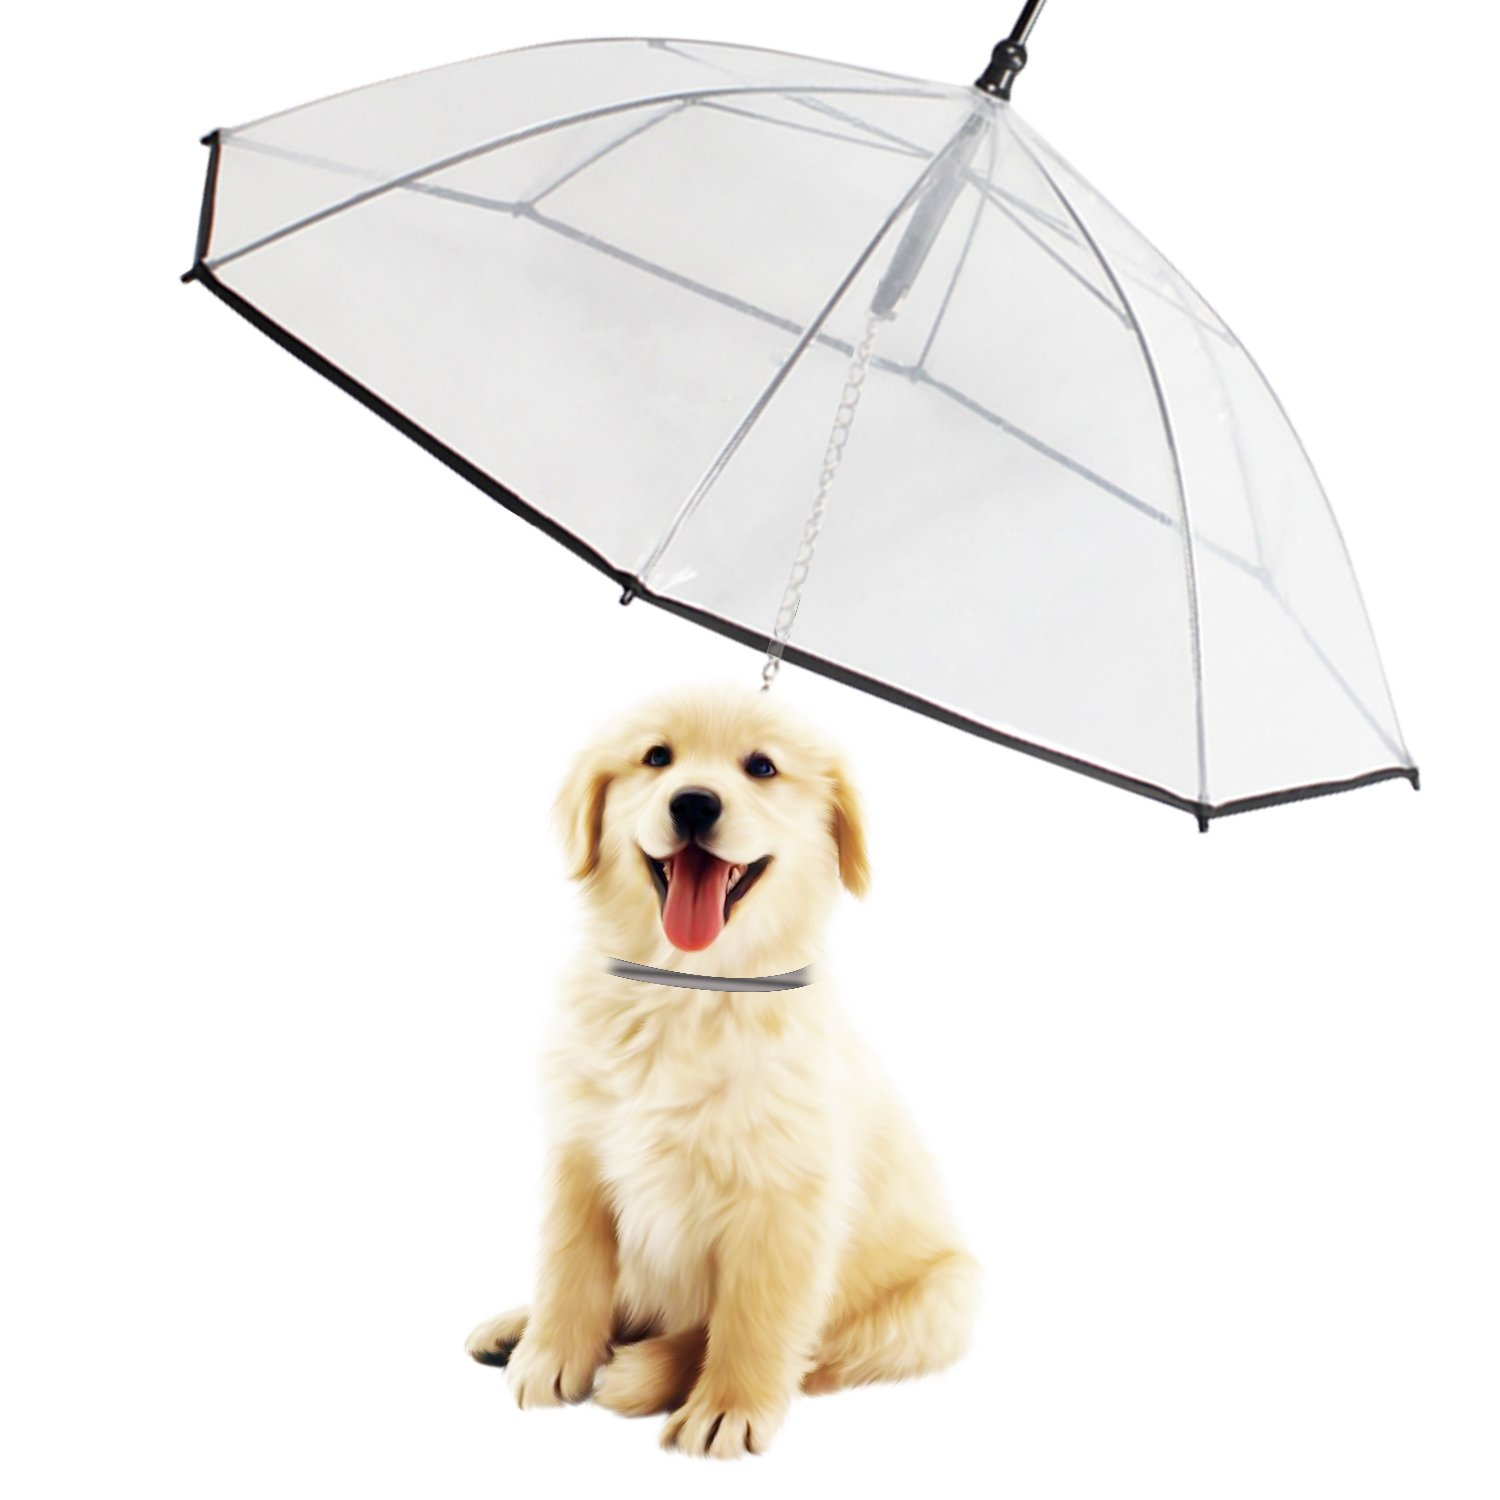 Morjava W555 Pet Dog Umbrella Leash Transparent Waterproof Dog Walking